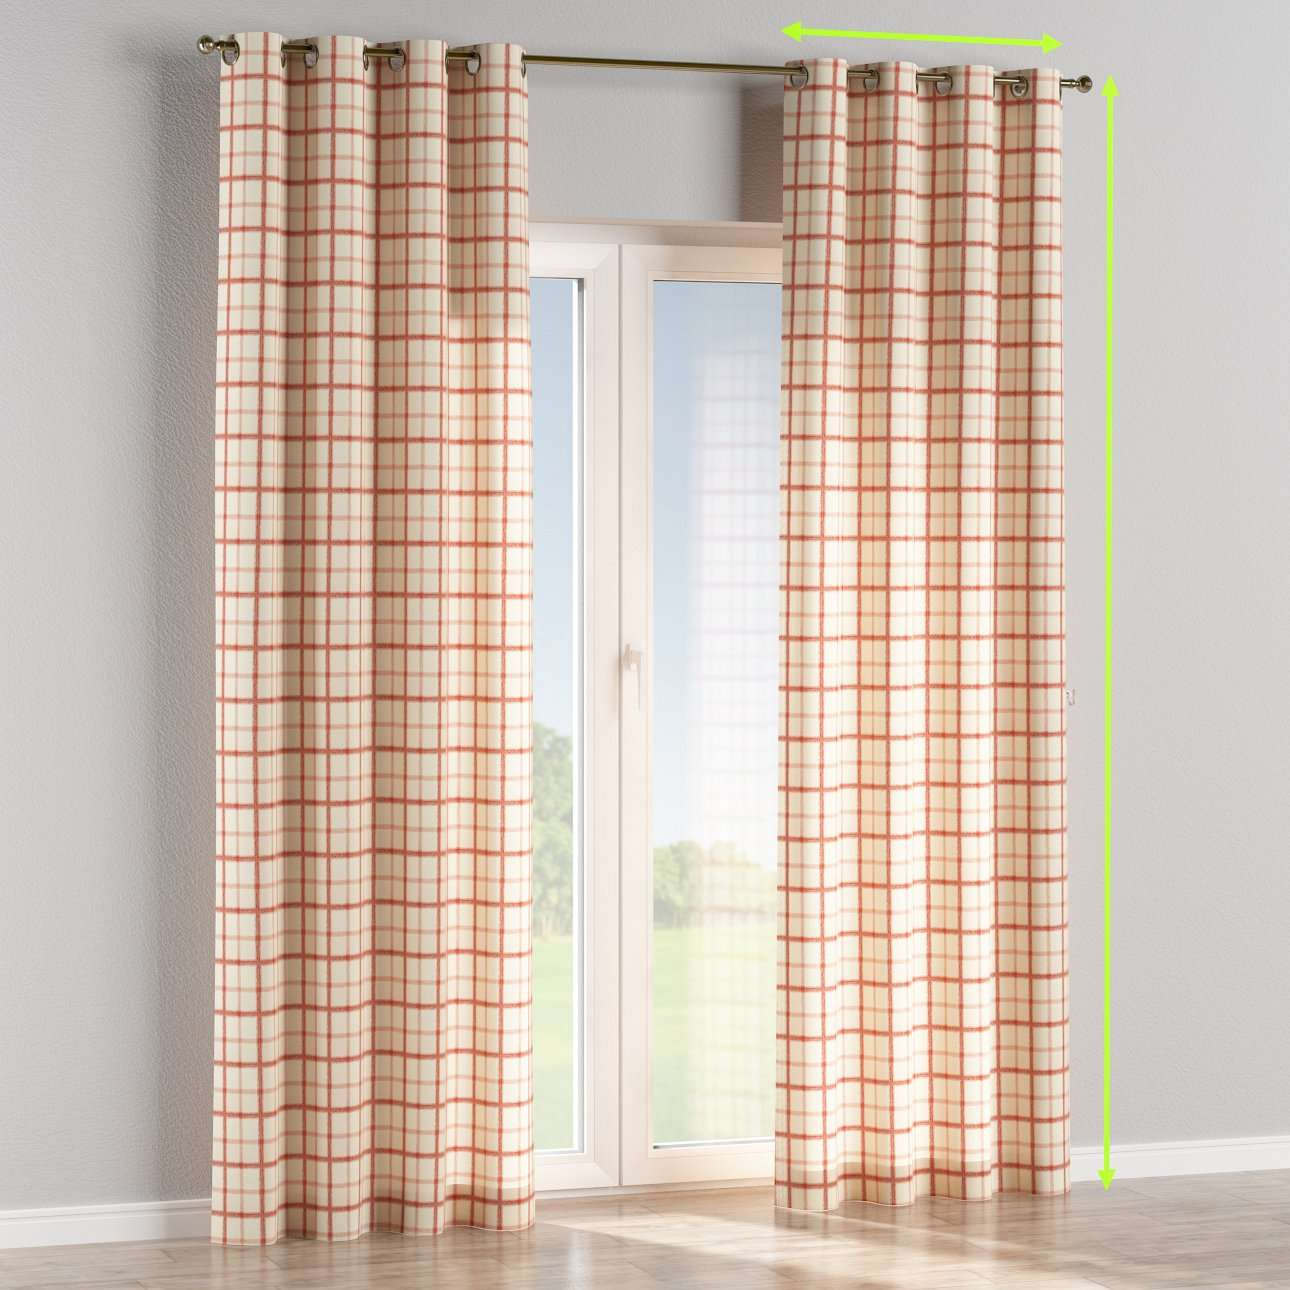 Eyelet lined curtains in collection Avinon, fabric: 131-15